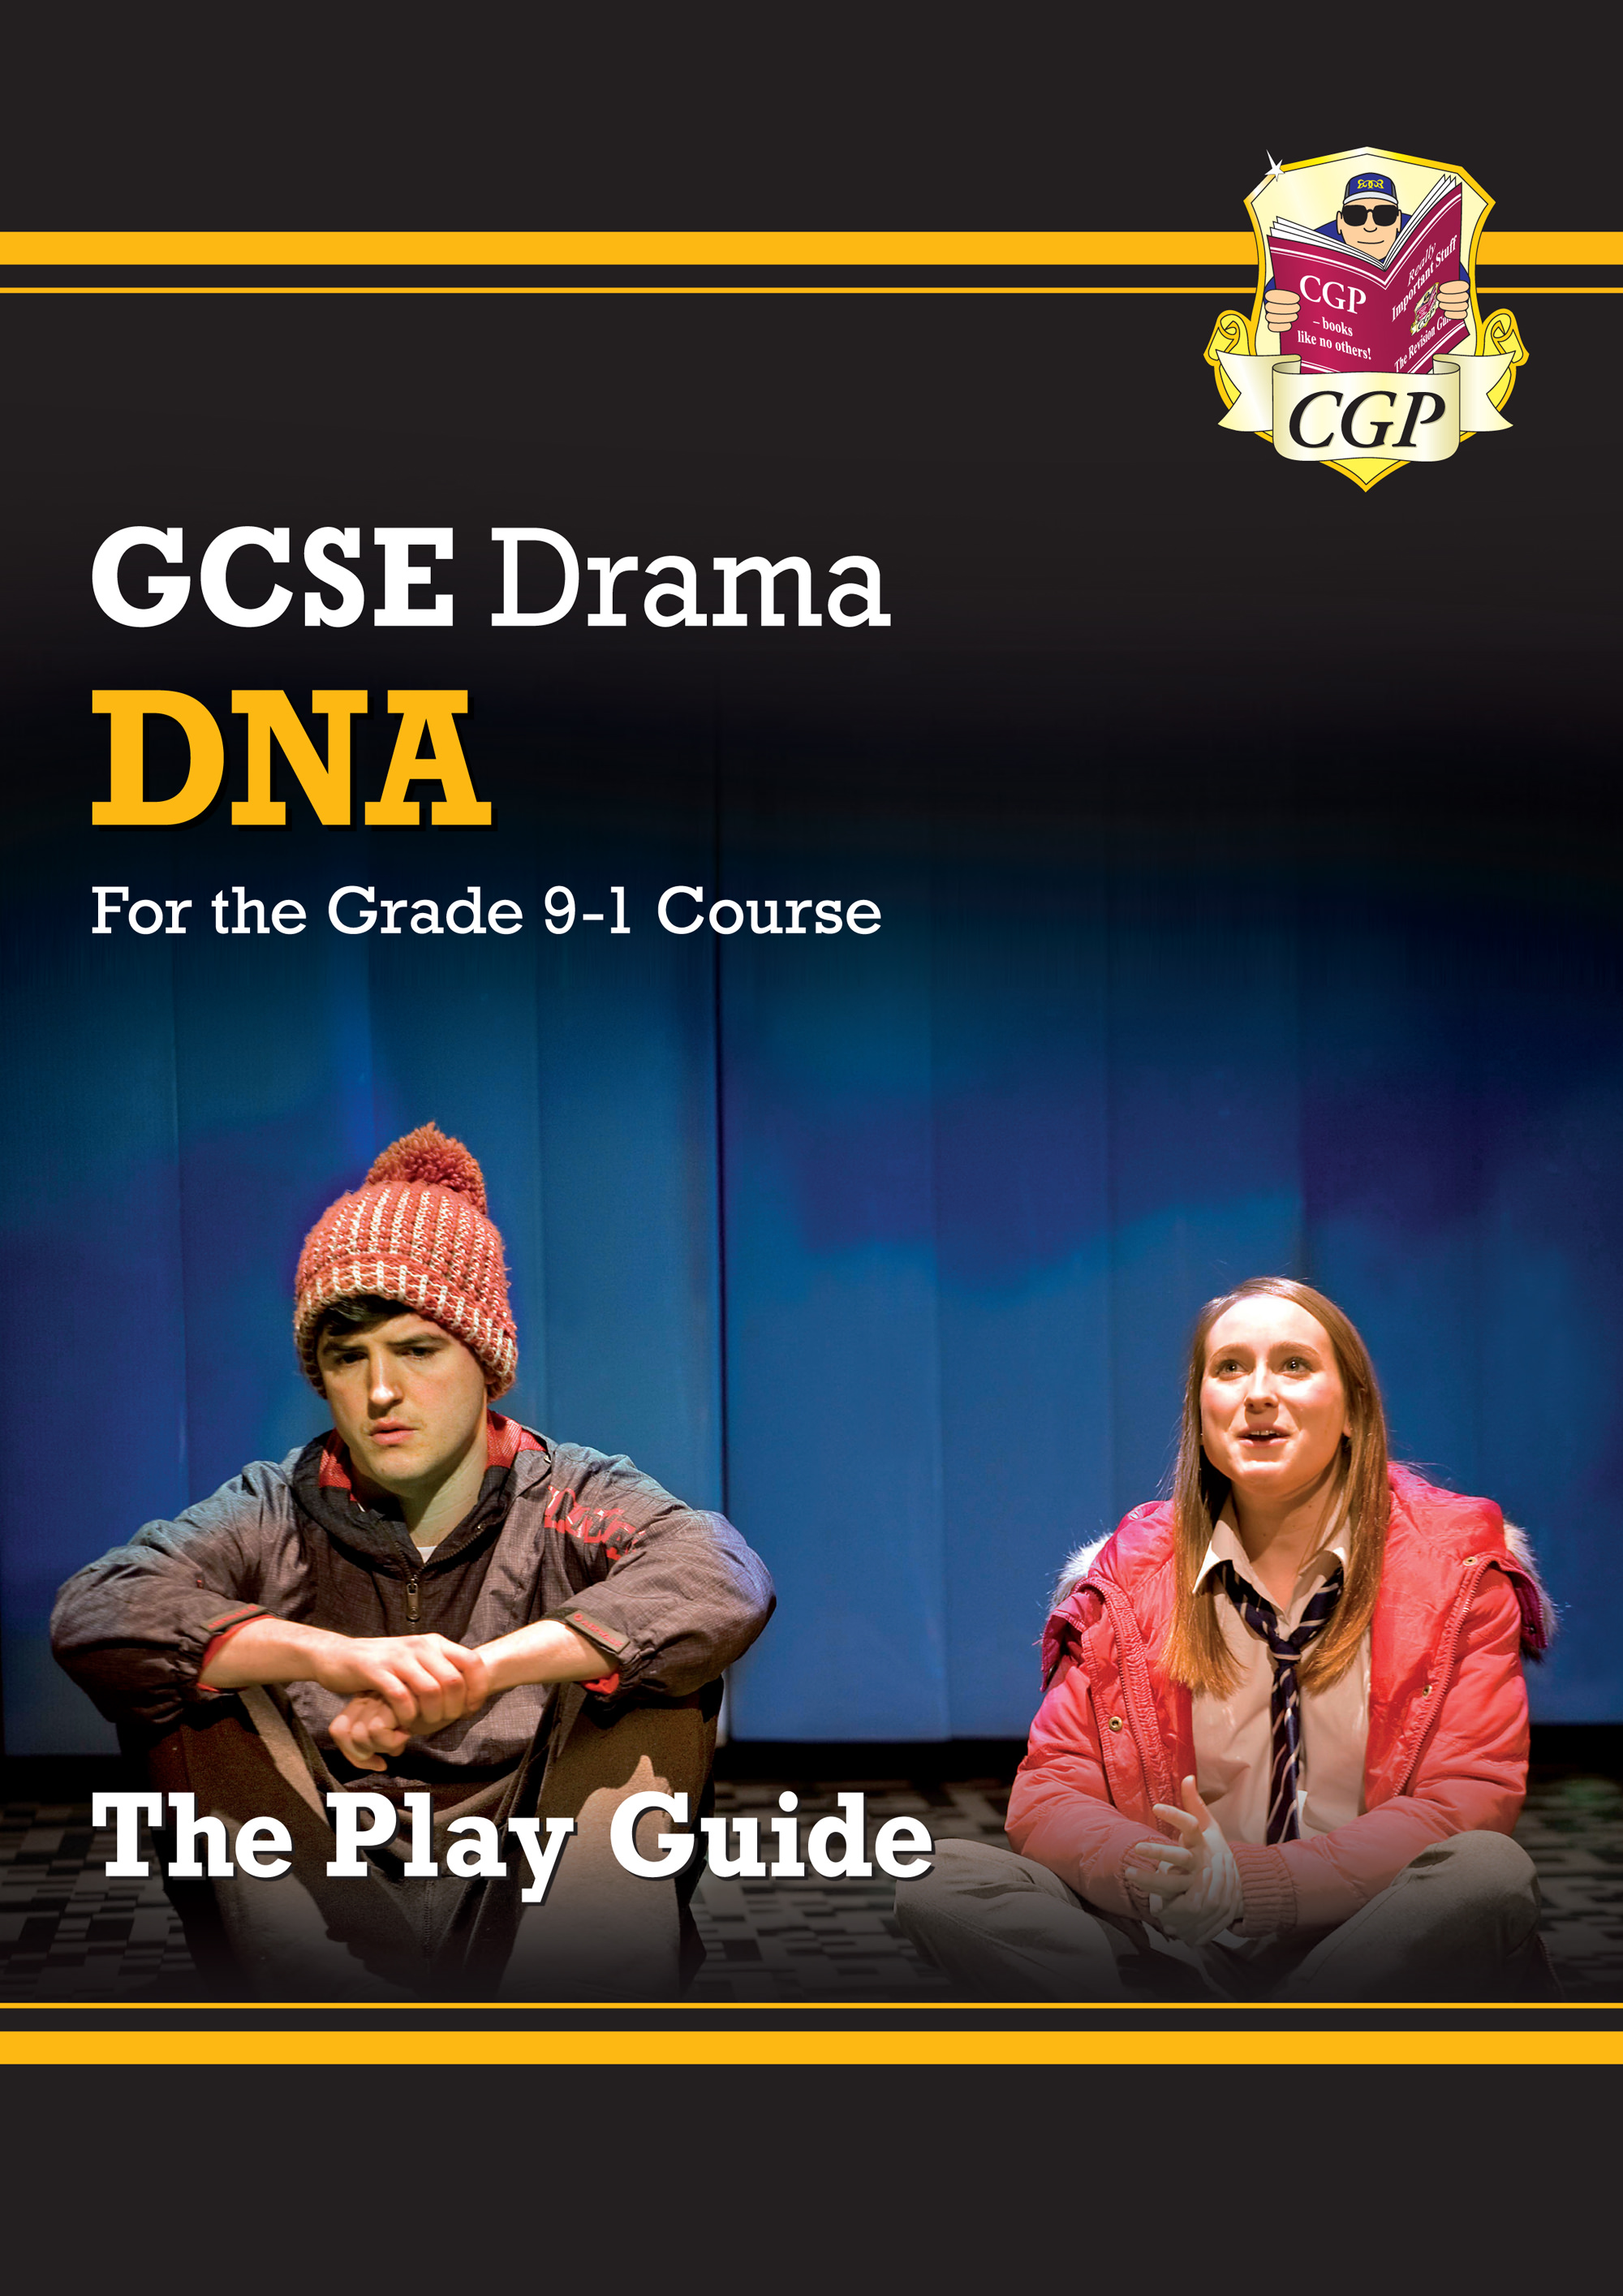 DMPD41 - New Grade 9-1 GCSE Drama Play Guide - DNA